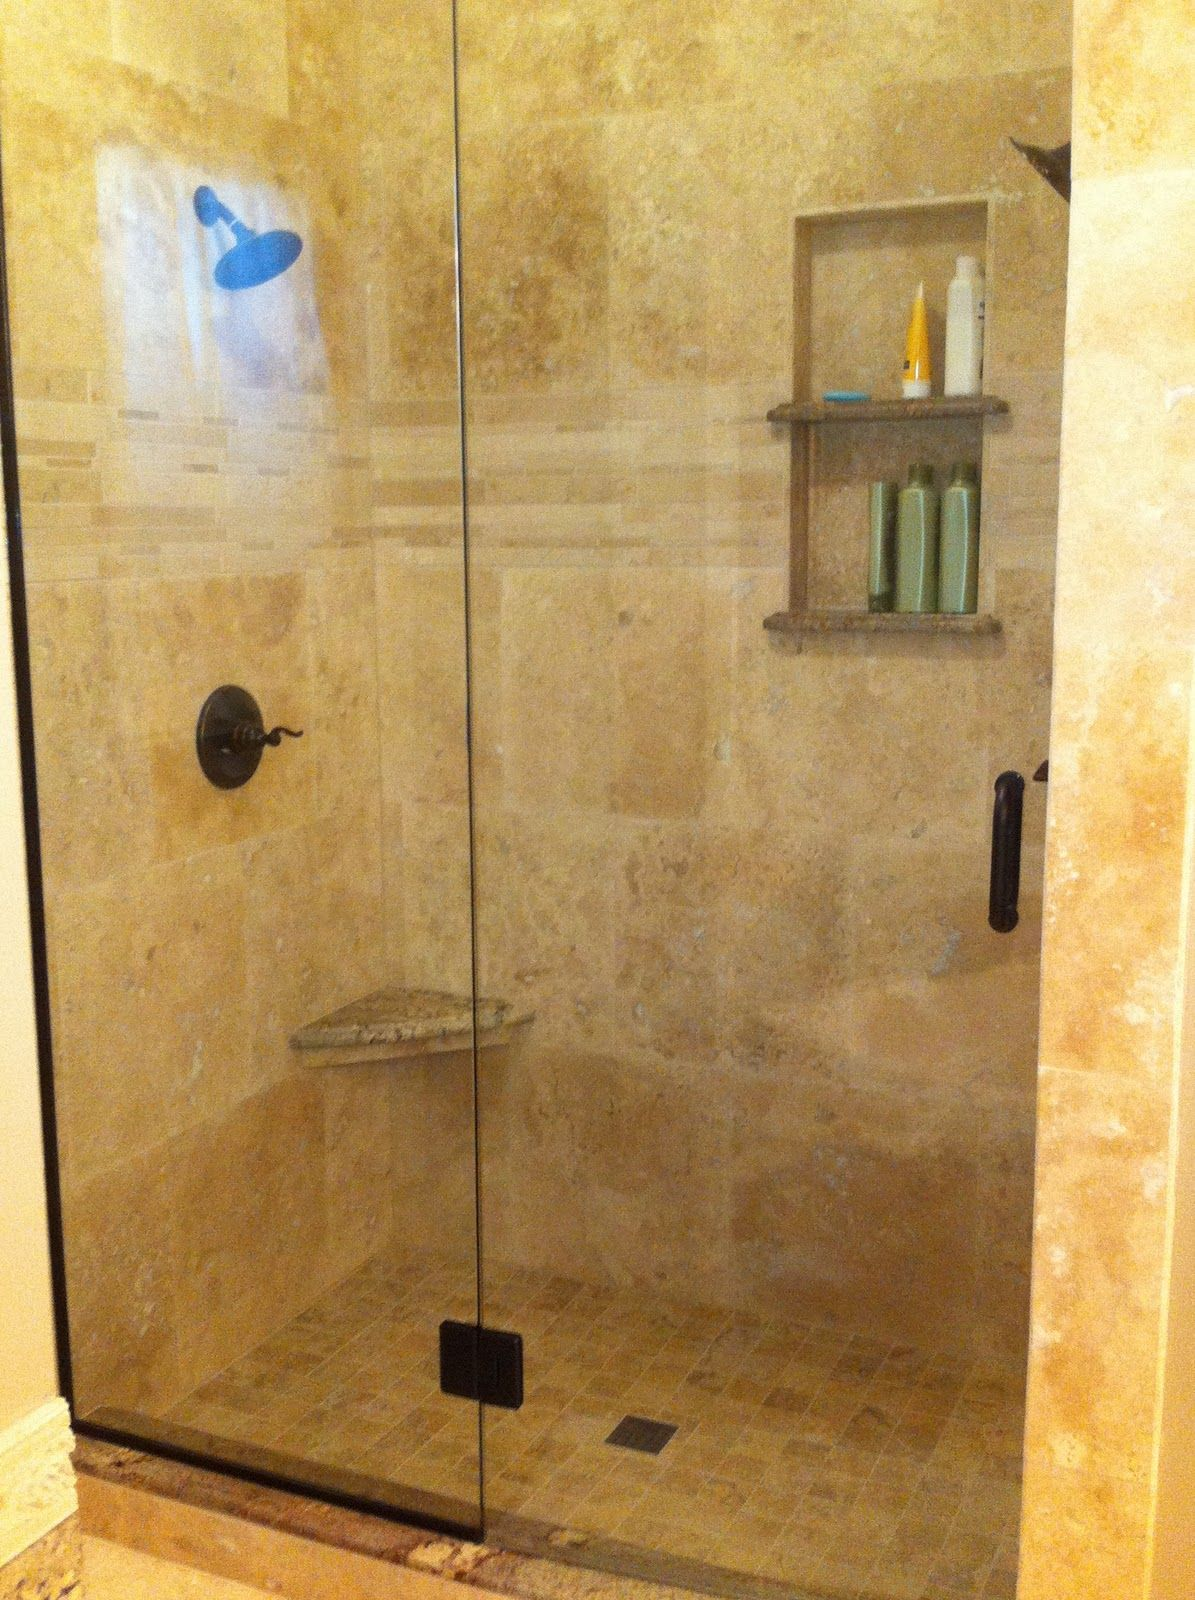 Travertine shower pictures bathroom elegant bathroom for Travertine tile in bathroom ideas